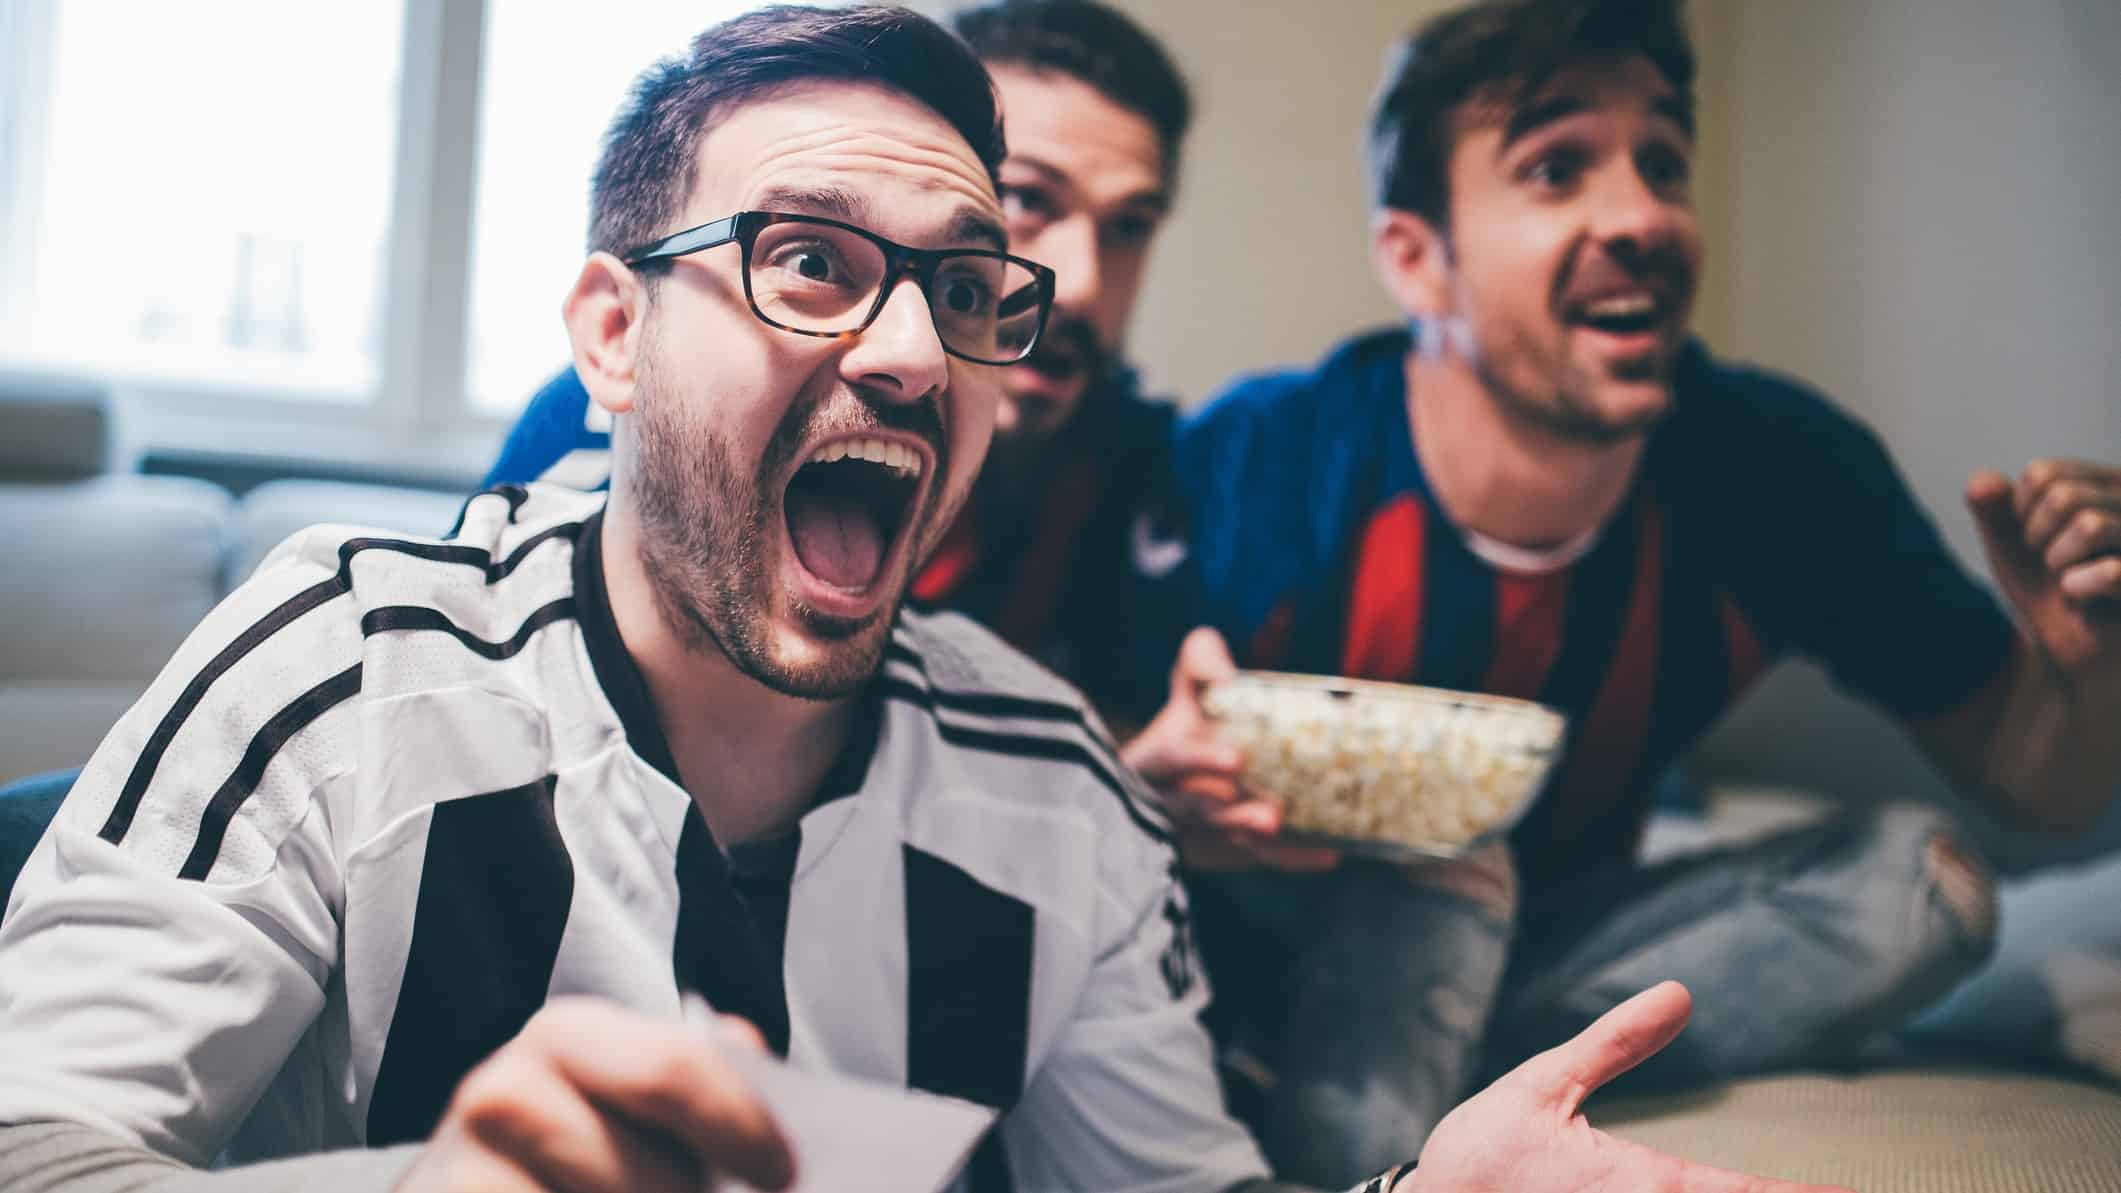 Man holding up betting slip and cheering along with two friends in front of TV